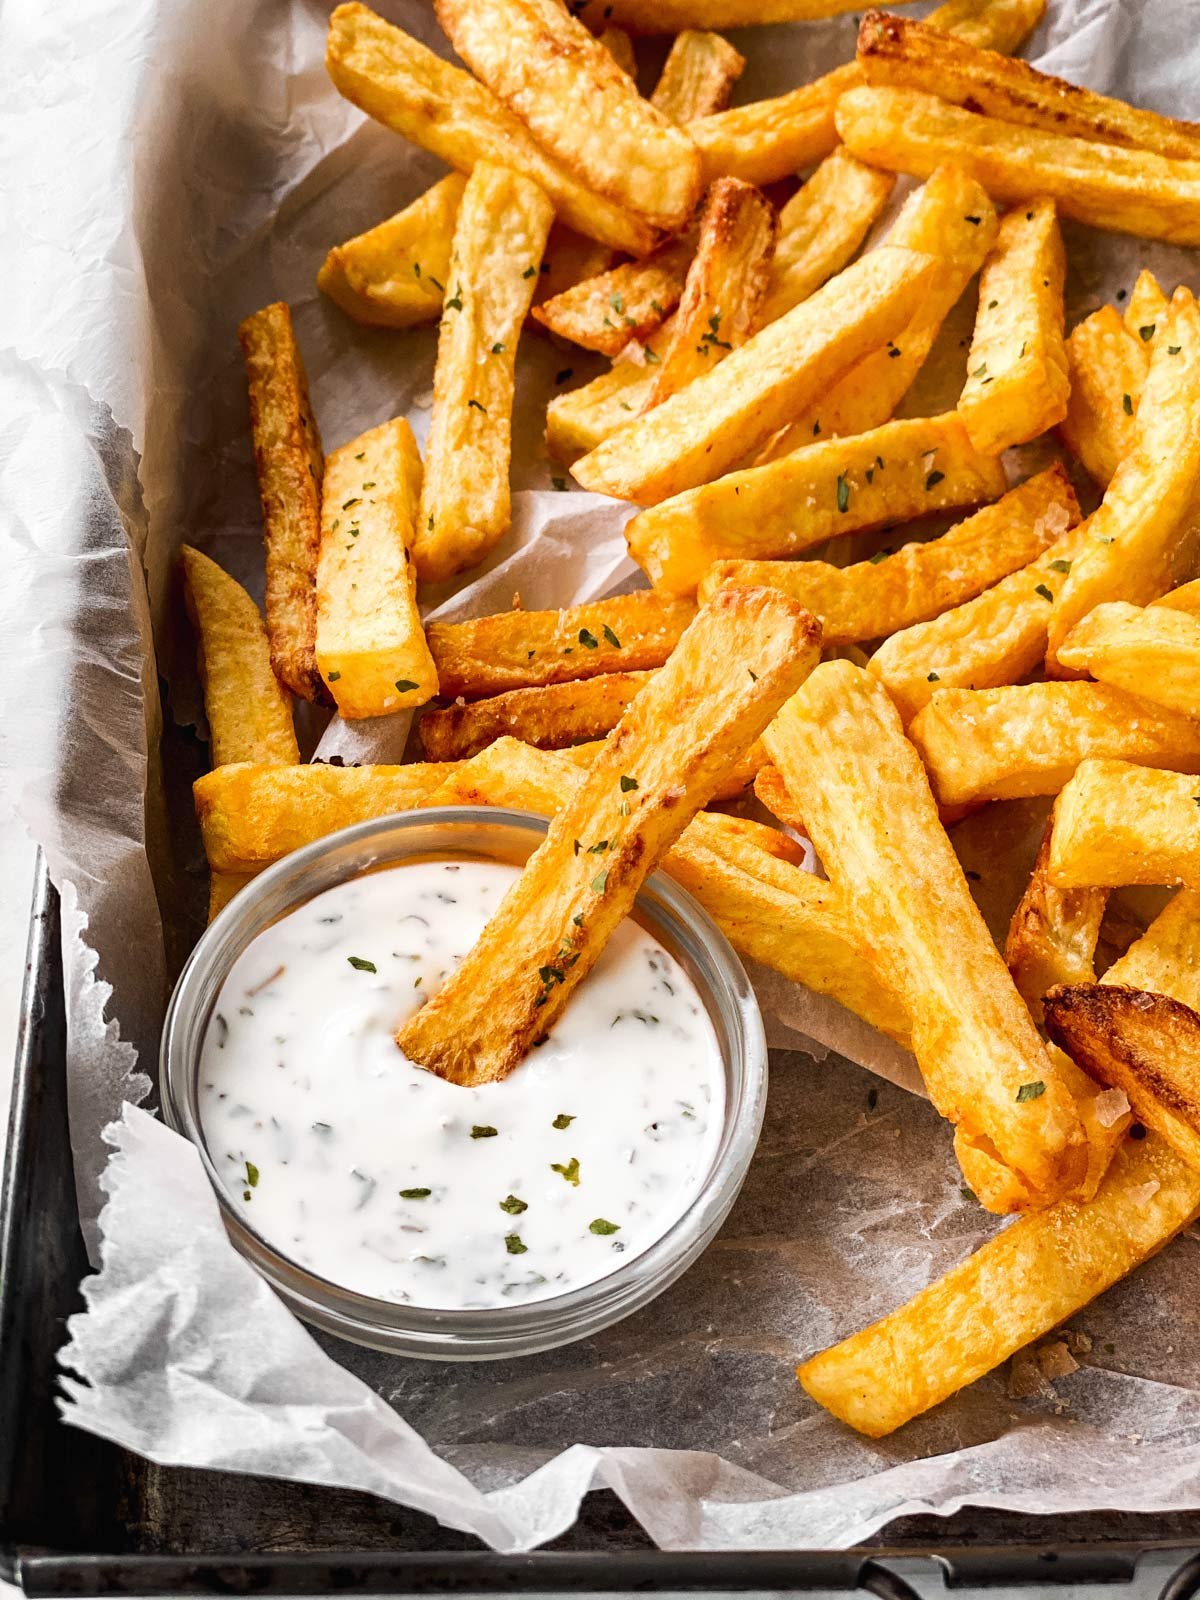 French fry dipped in ranch on tray with other French fries